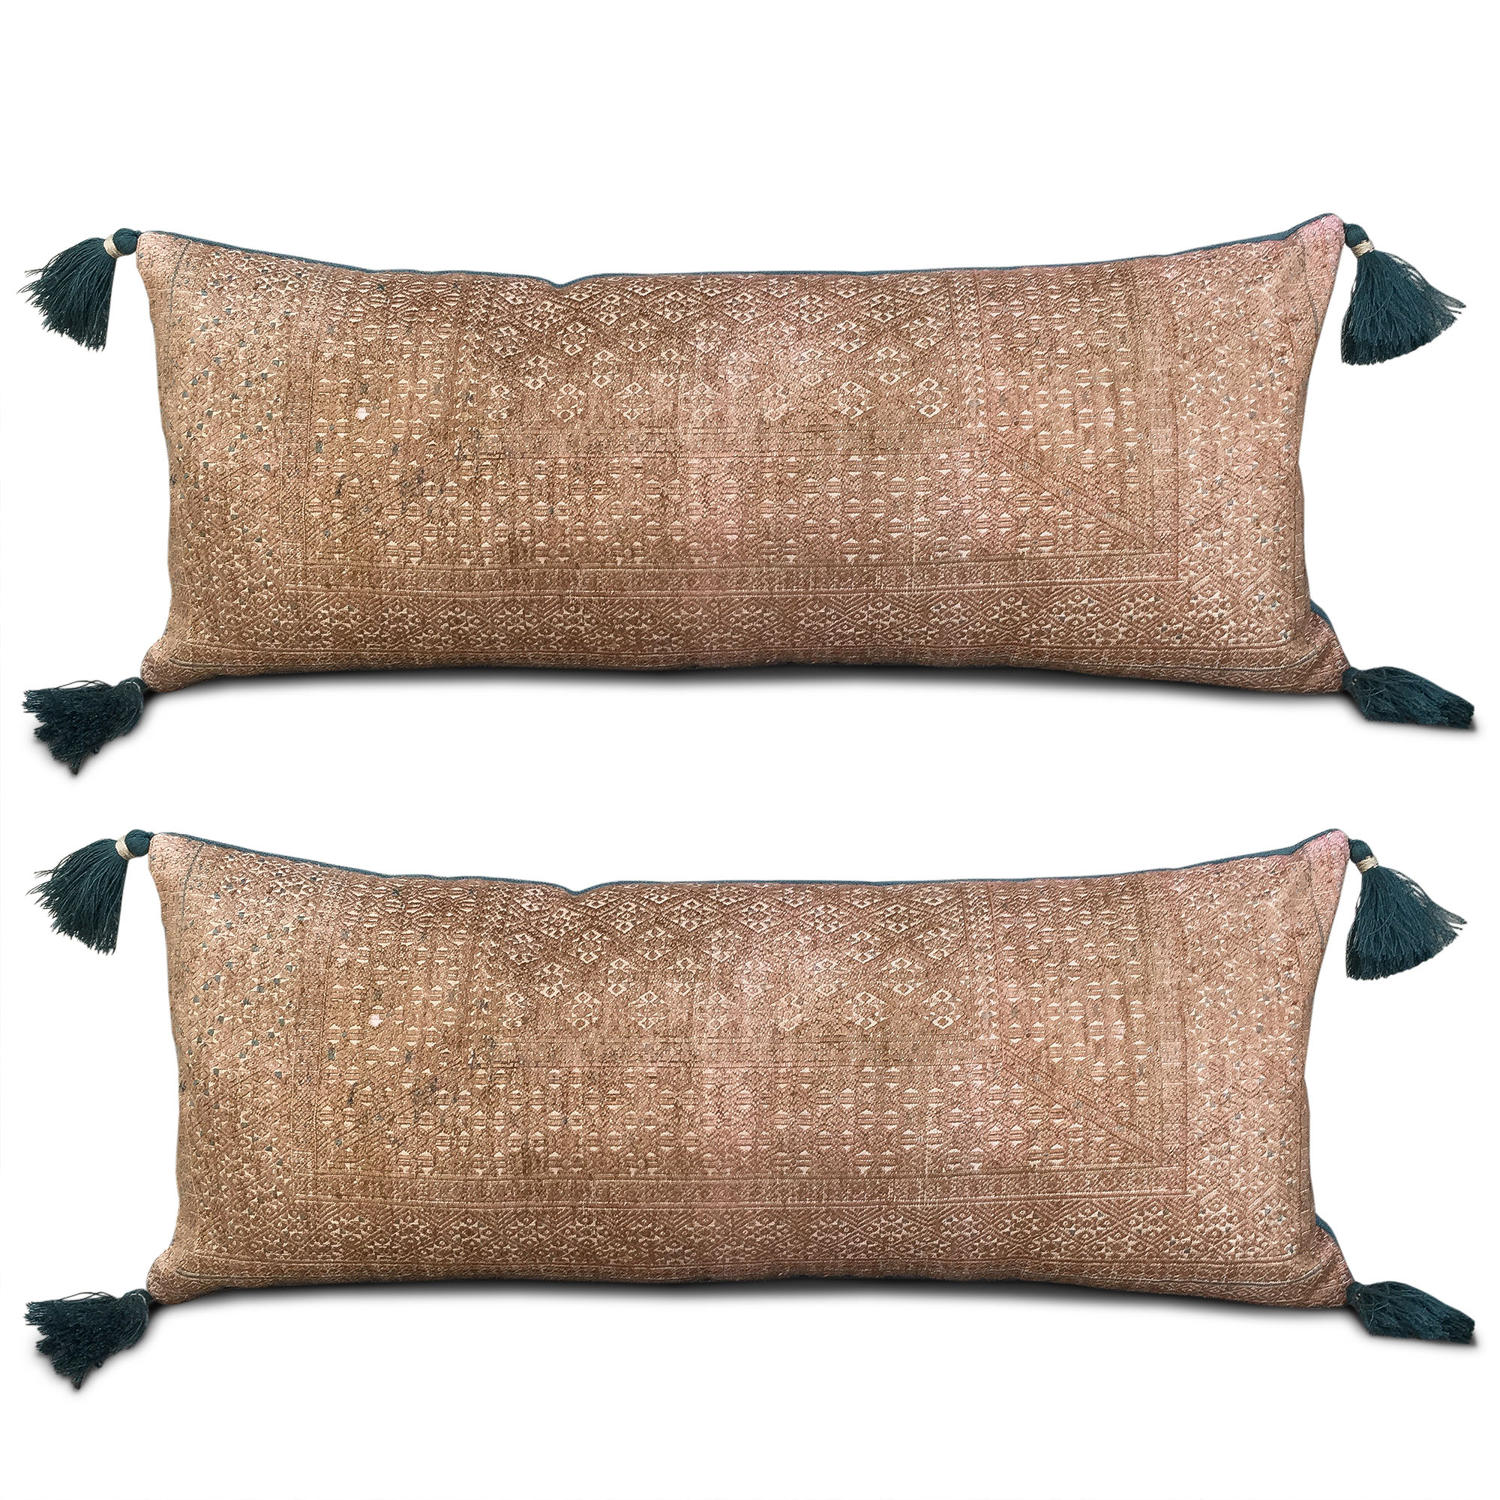 Bronze and Teal Zhuang Cushions